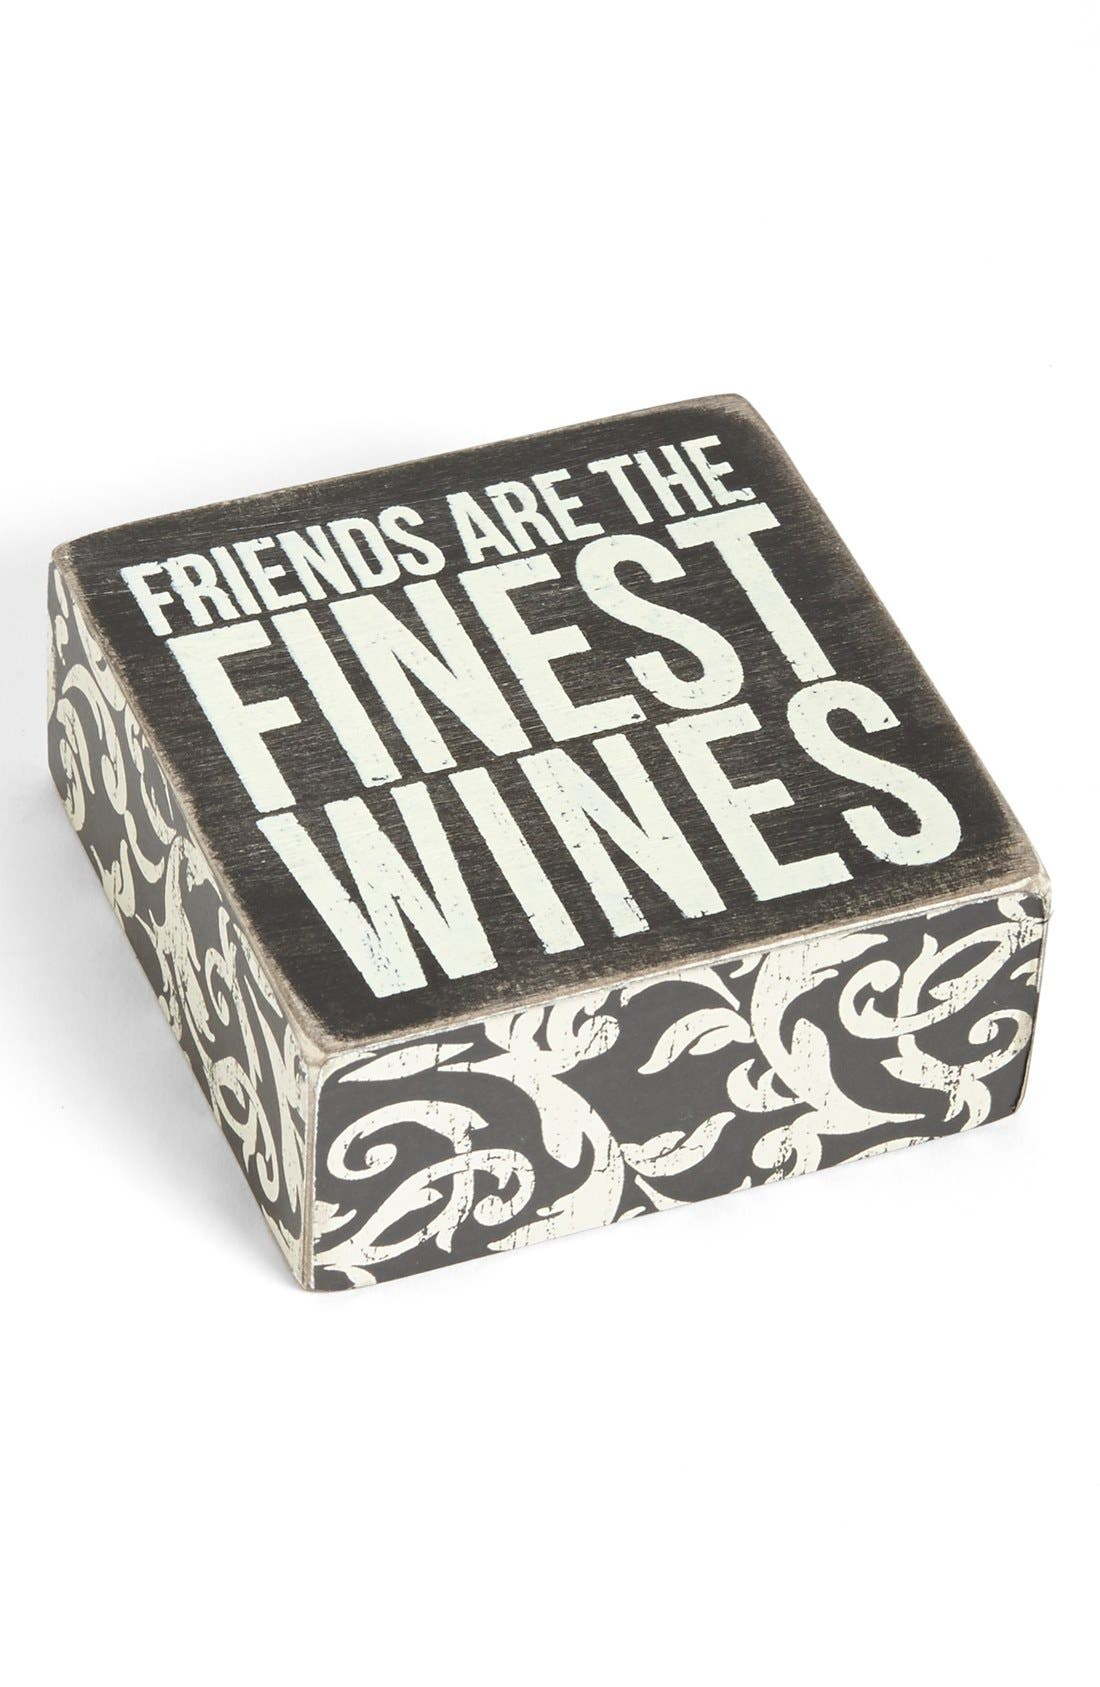 Alternate Image 1 Selected - Primitives by Kathy 'Friends Are the Finest Wines' Box Sign